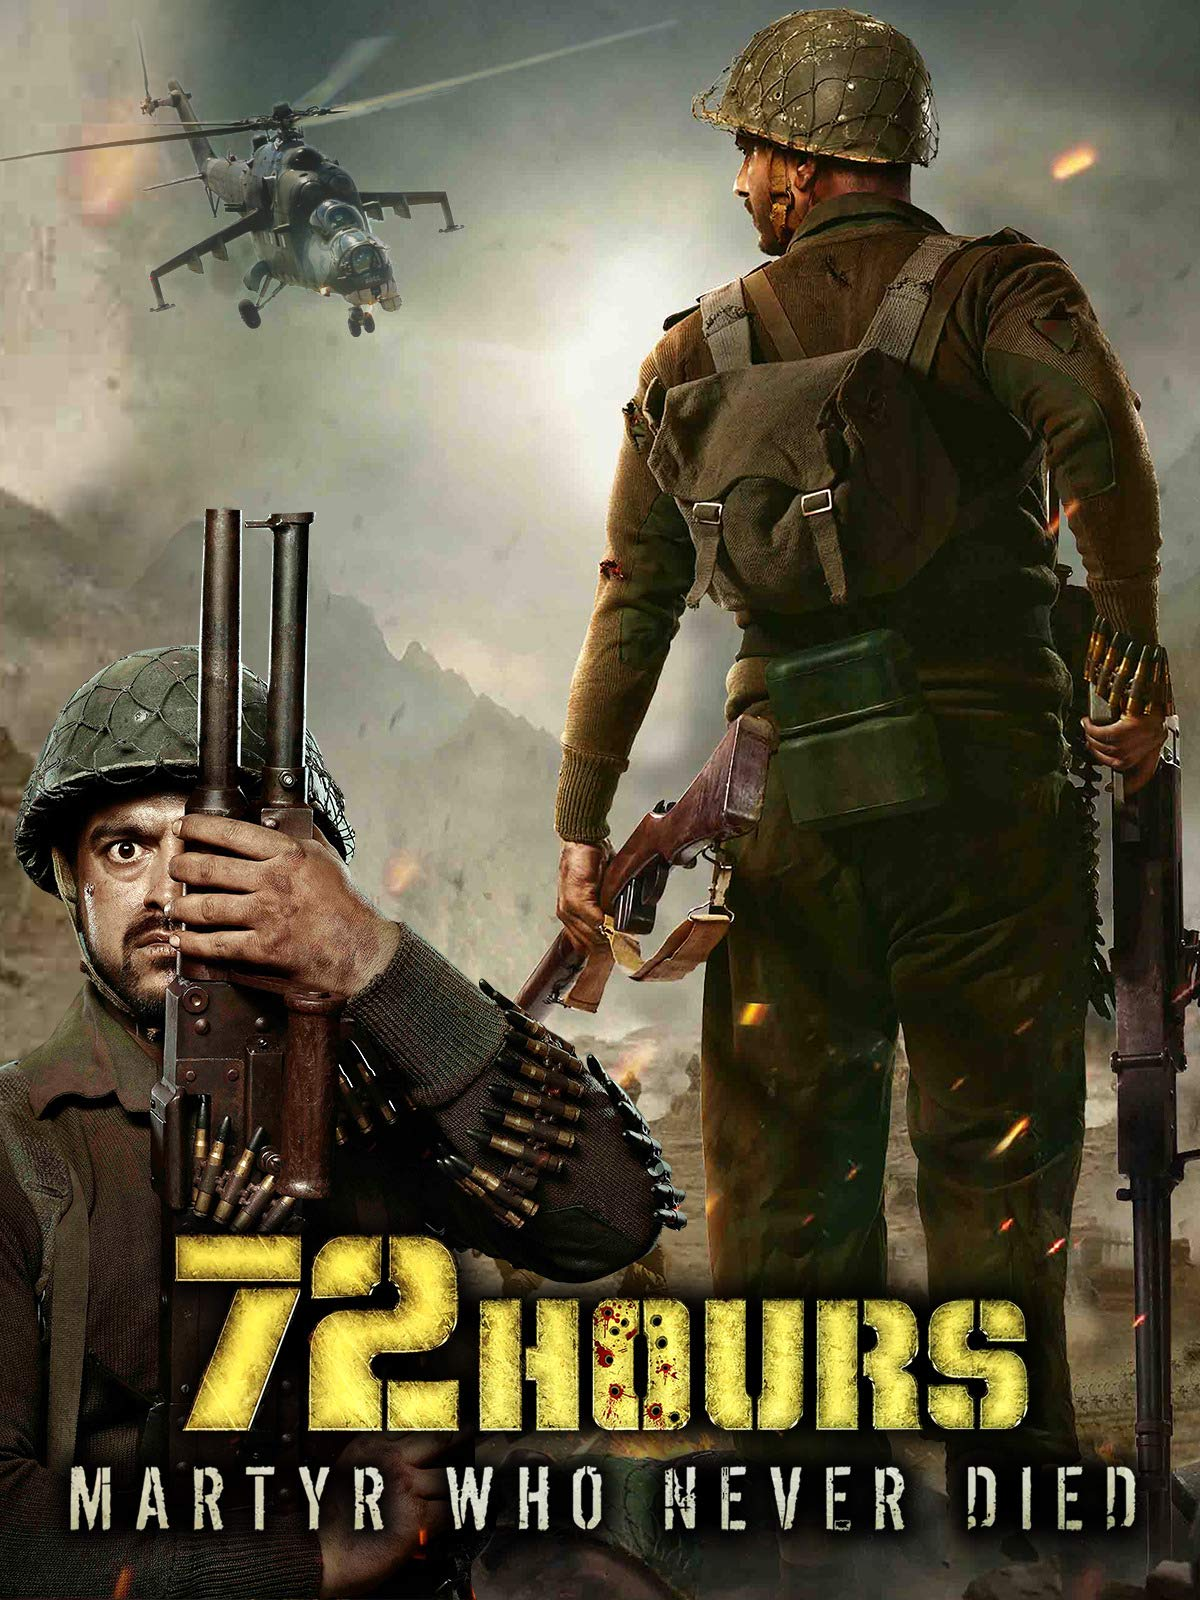 72 Hours Martyr Who Never Died Movie Online